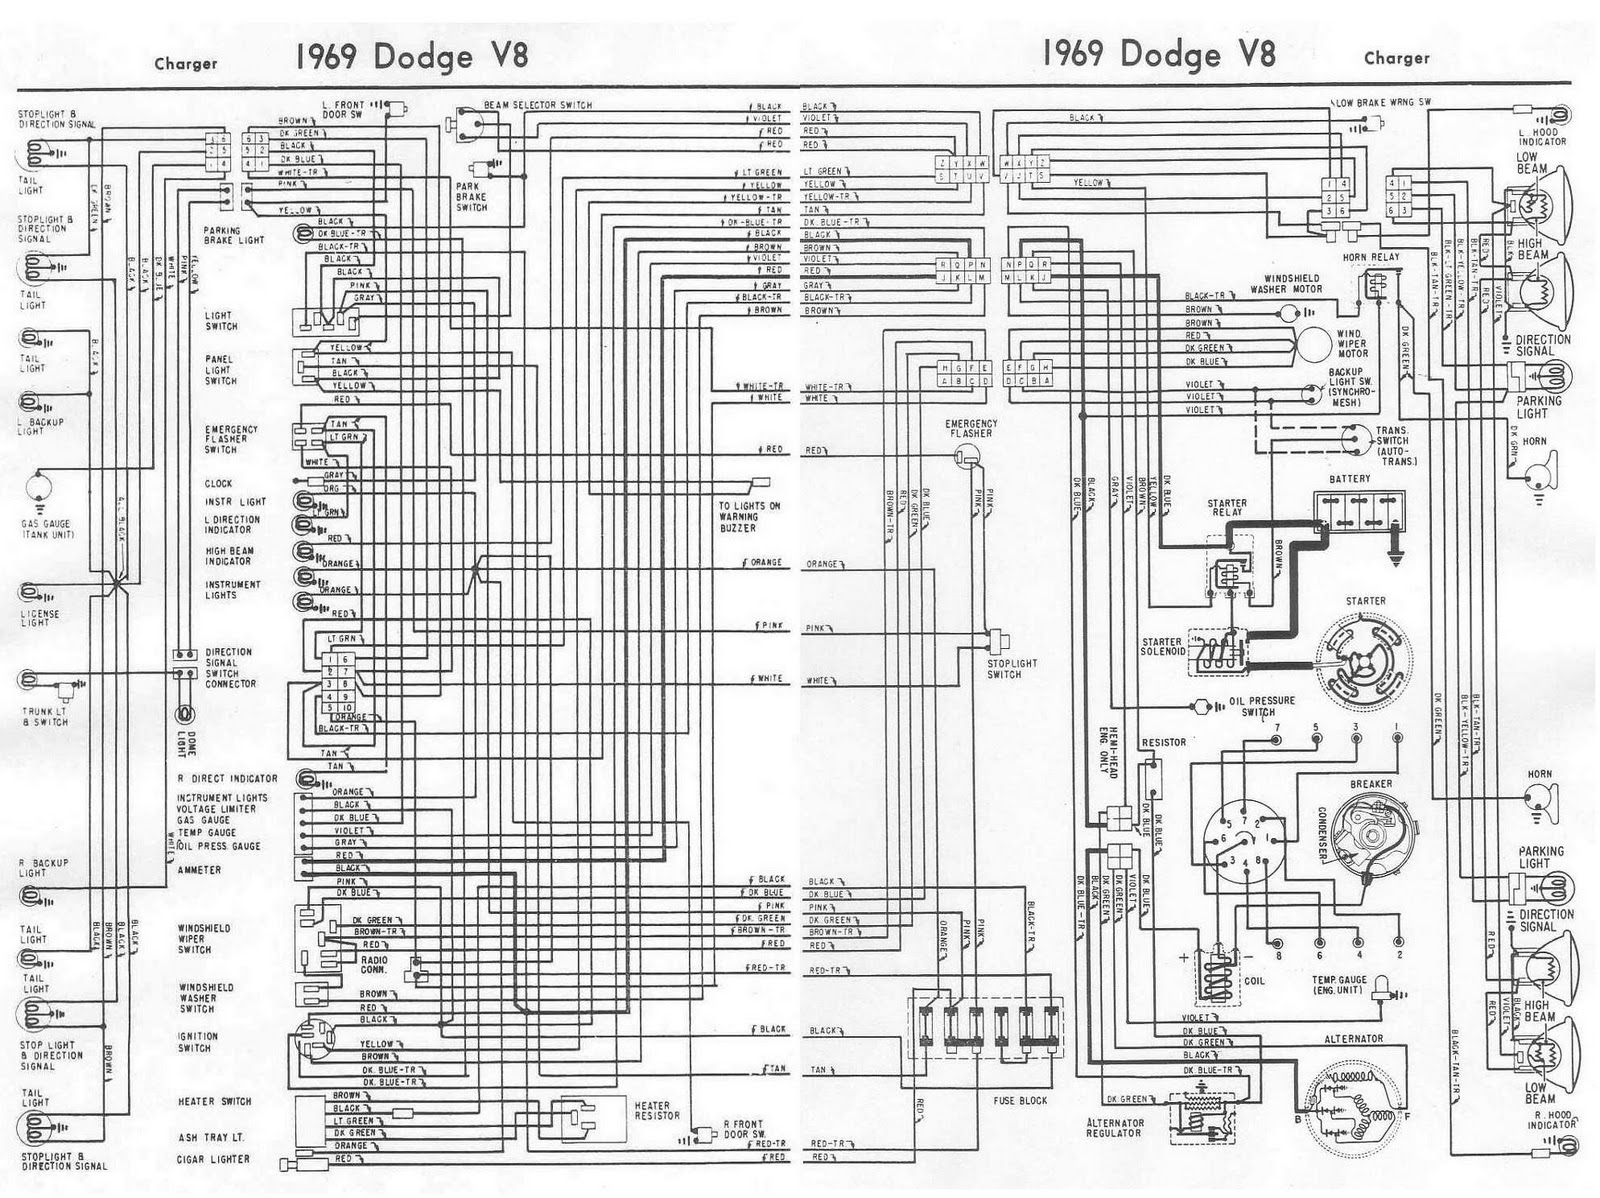 2015 dodge challenger stereo wiring diagram schematic 1970 dodge challenger ignition wiring diagram 1970 dodge challenger rallye dash color wiring diagram ...